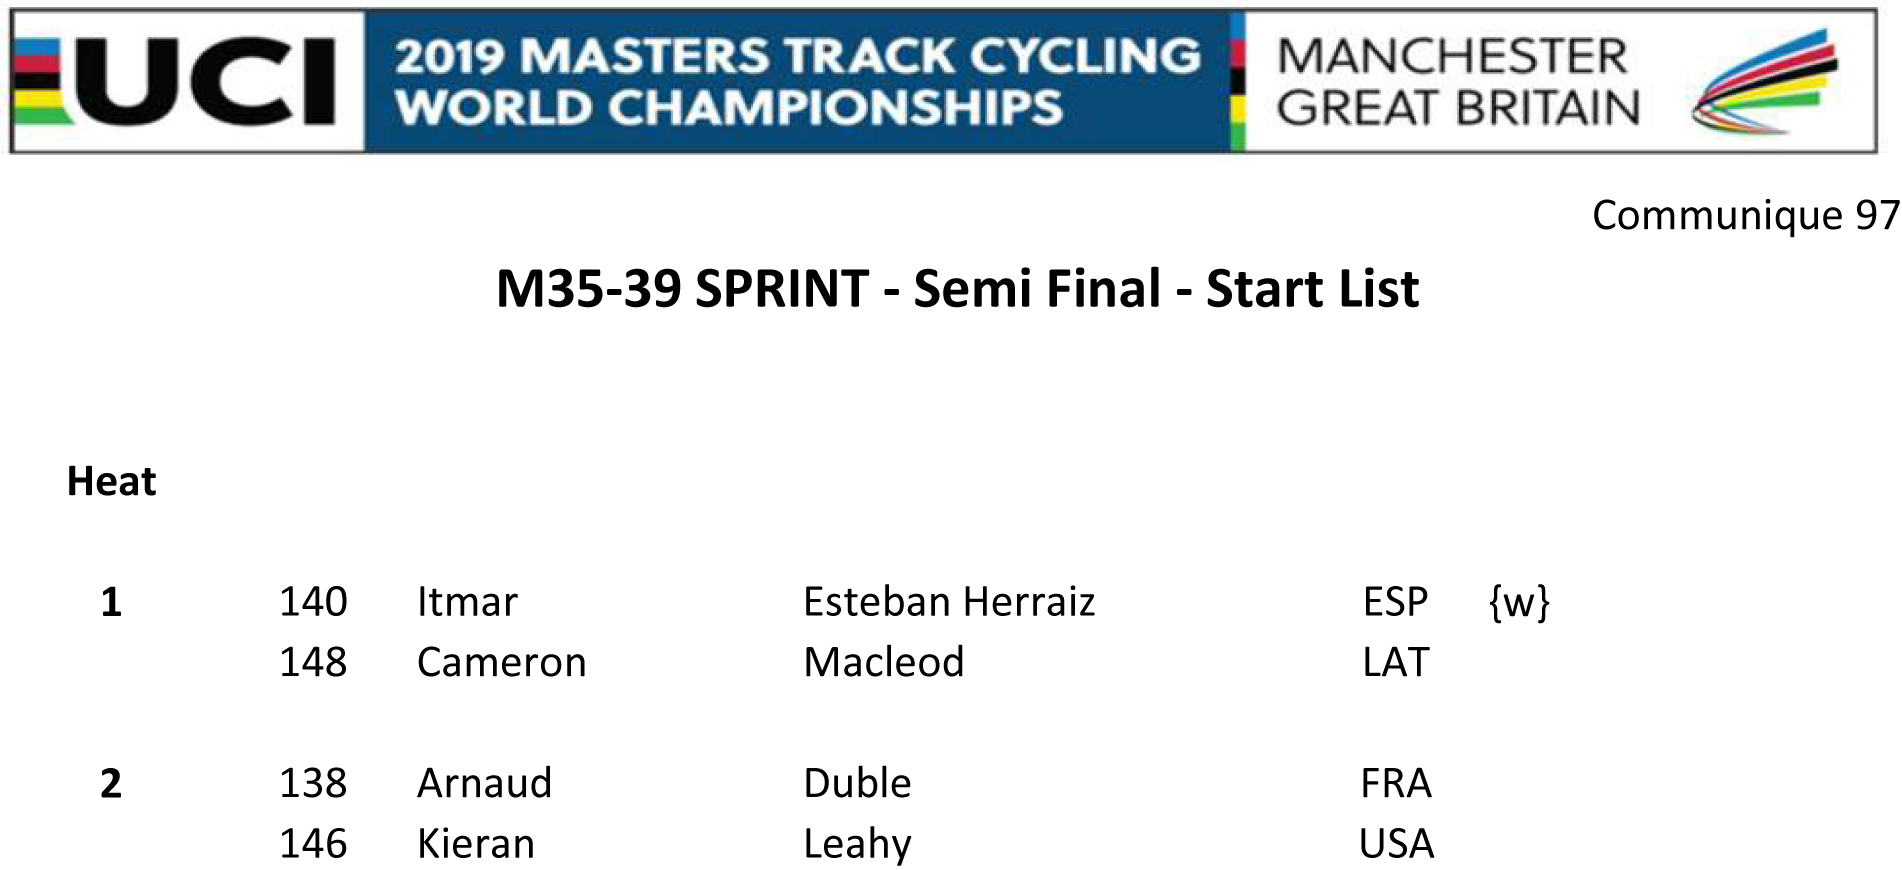 M3539 SPRINT SF START LIST